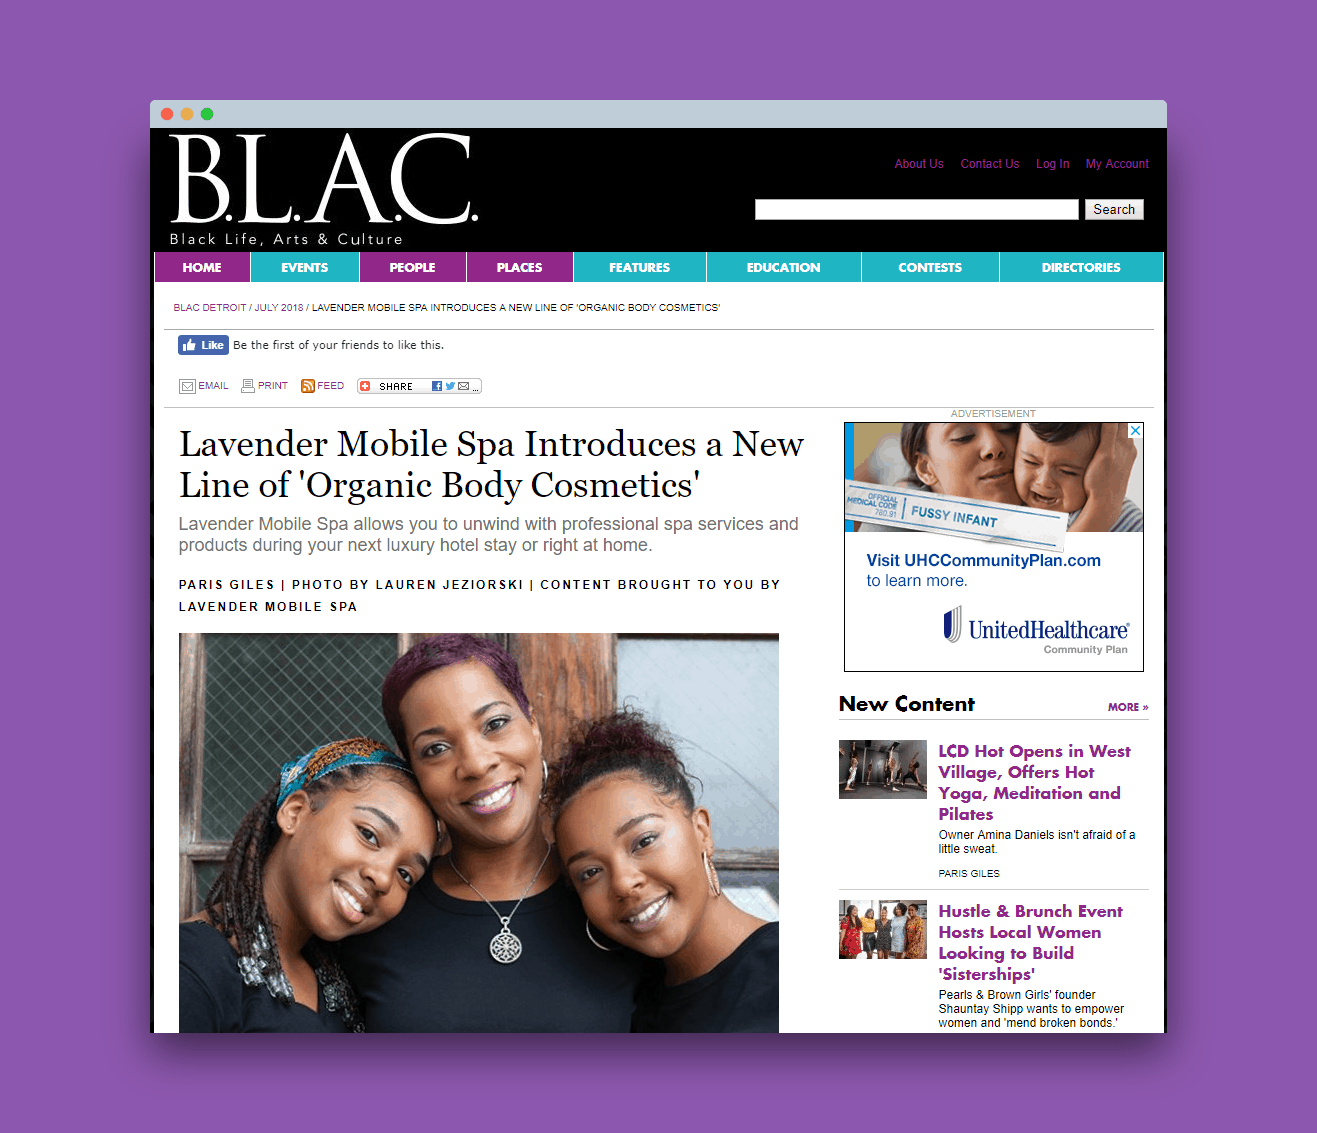 Body Cosmetics Line Featured in BLAC Magazine